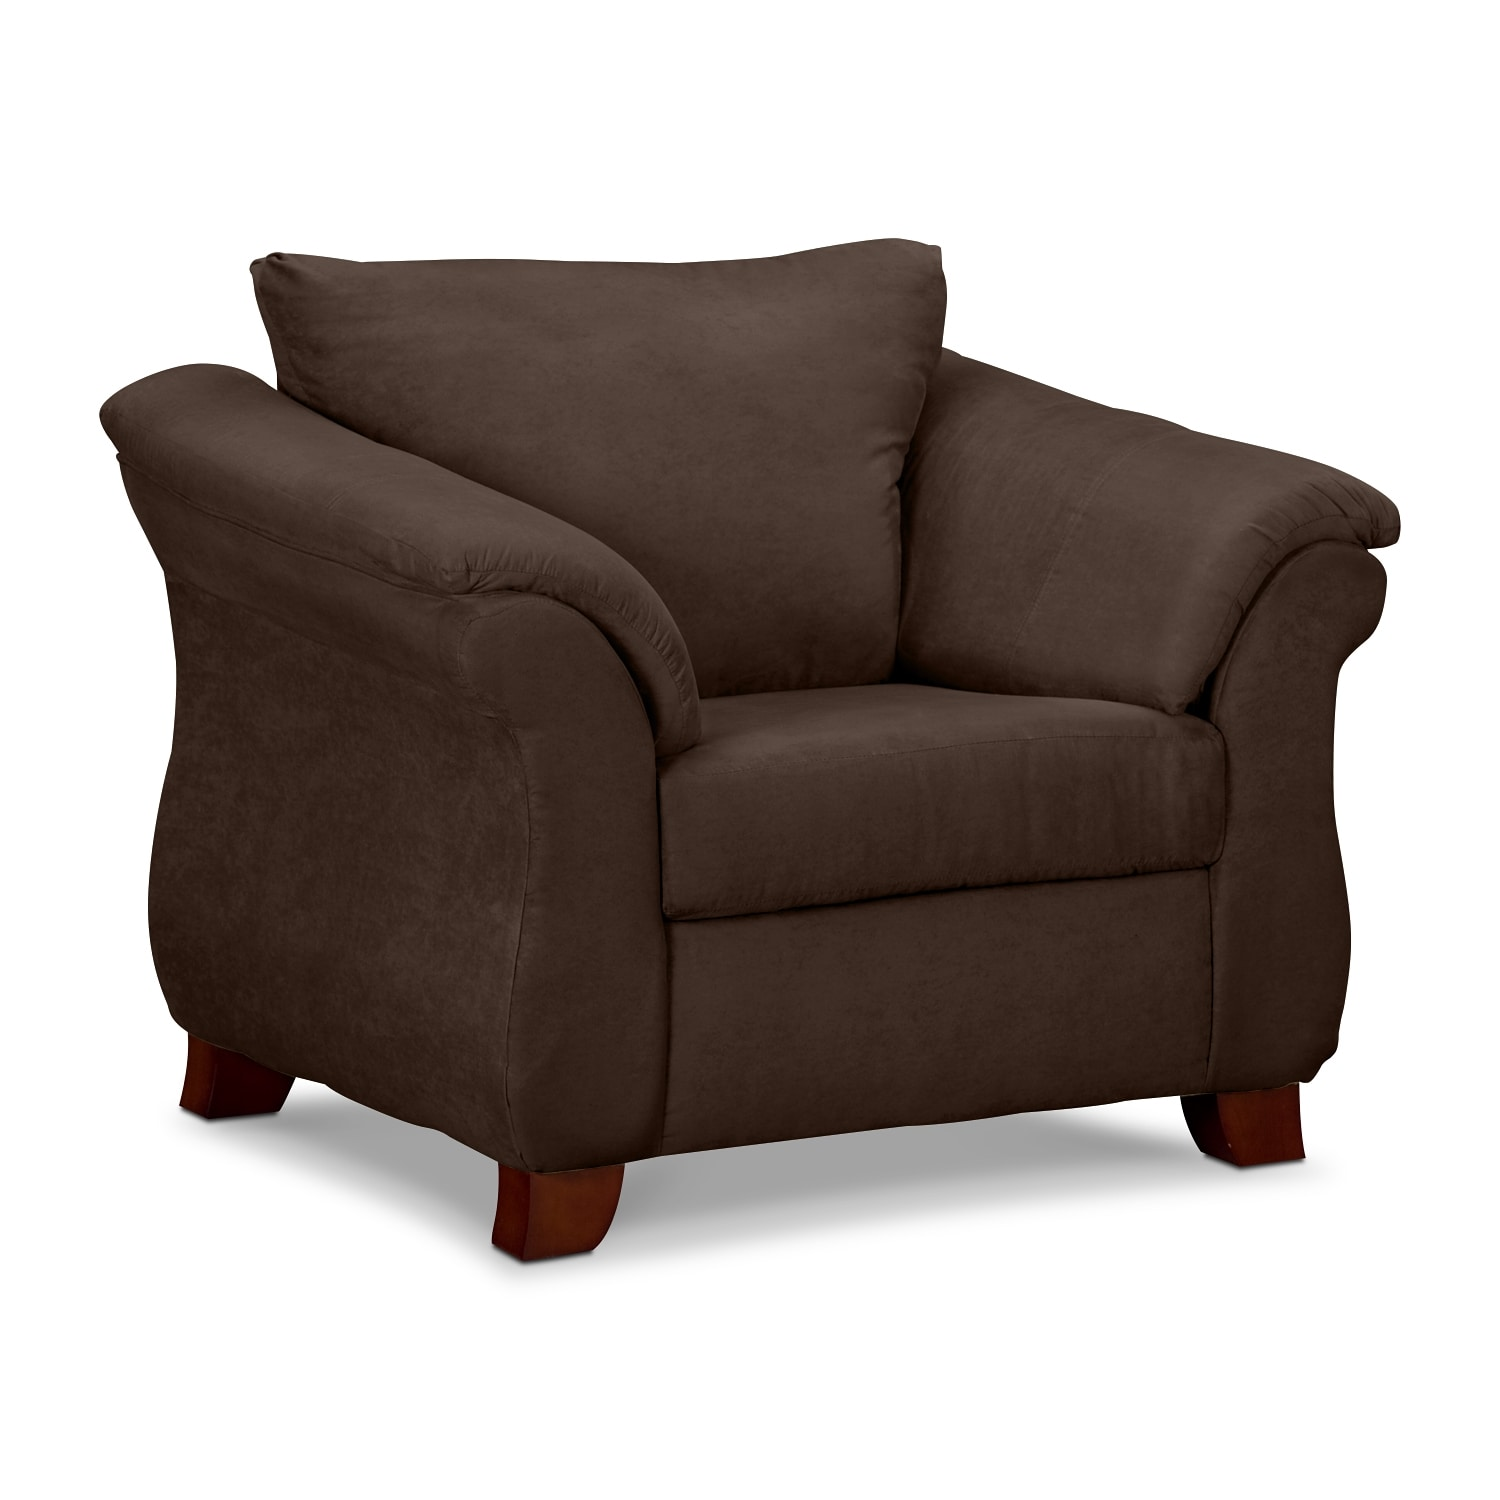 Living Room Furniture - Adrian Chocolate Chair